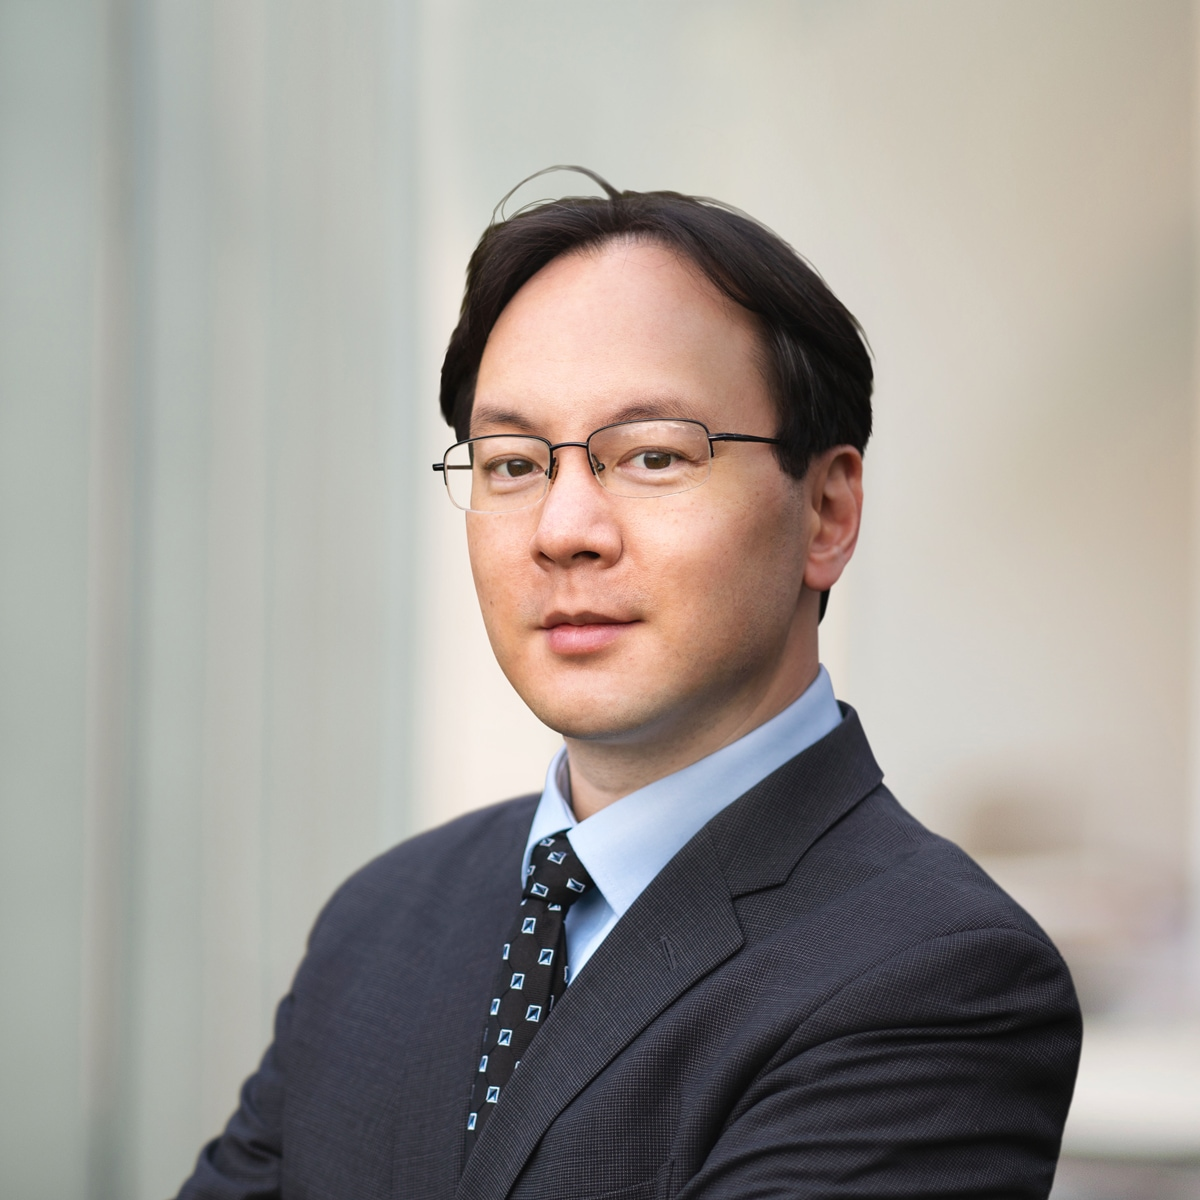 Lawyers specialized in immigration law, Benjamin Hu